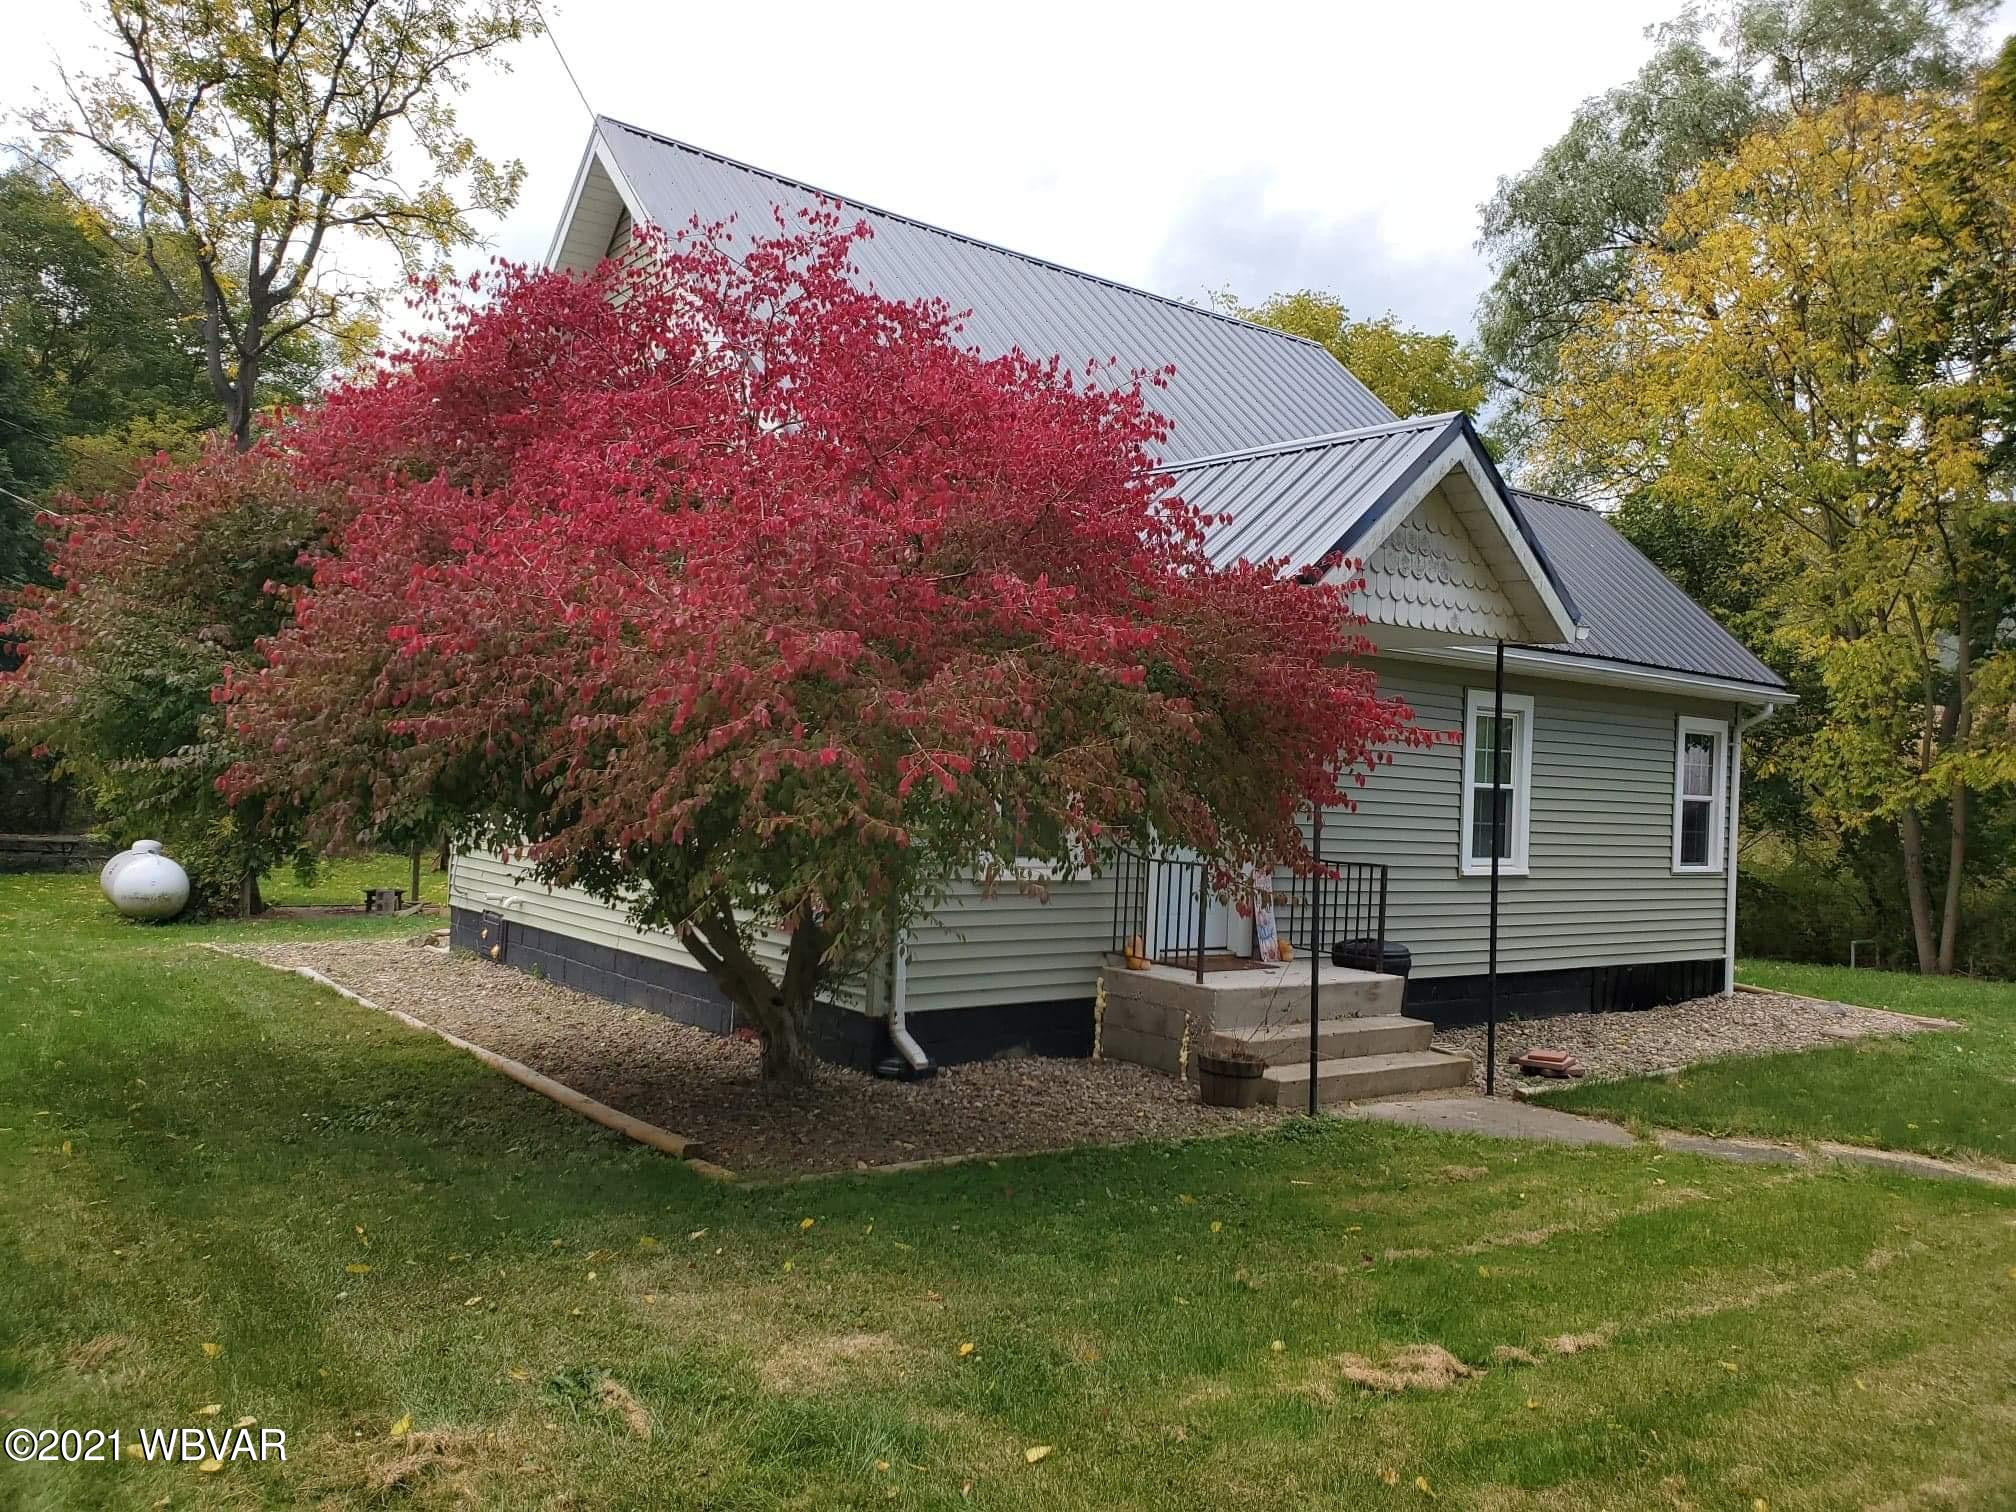 36 PEACH ORCHARD ROAD, Mill Hall, PA 17751, 3 Bedrooms Bedrooms, ,1.5 BathroomsBathrooms,Residential,For sale,PEACH ORCHARD,WB-91717